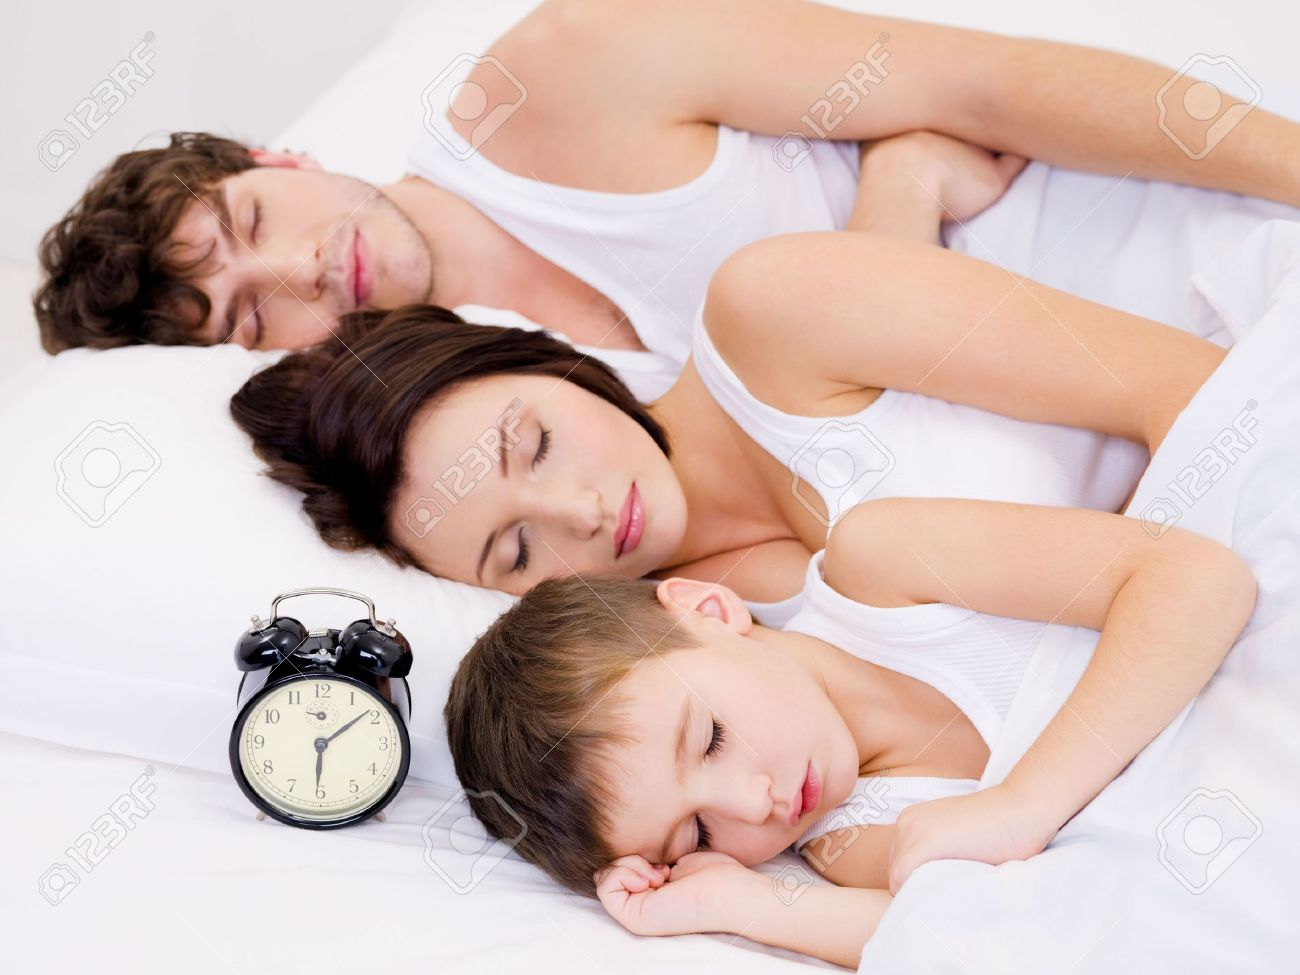 Three person of the young family sleeping with alarm clock near  their  heads Stock Photo - 6614546